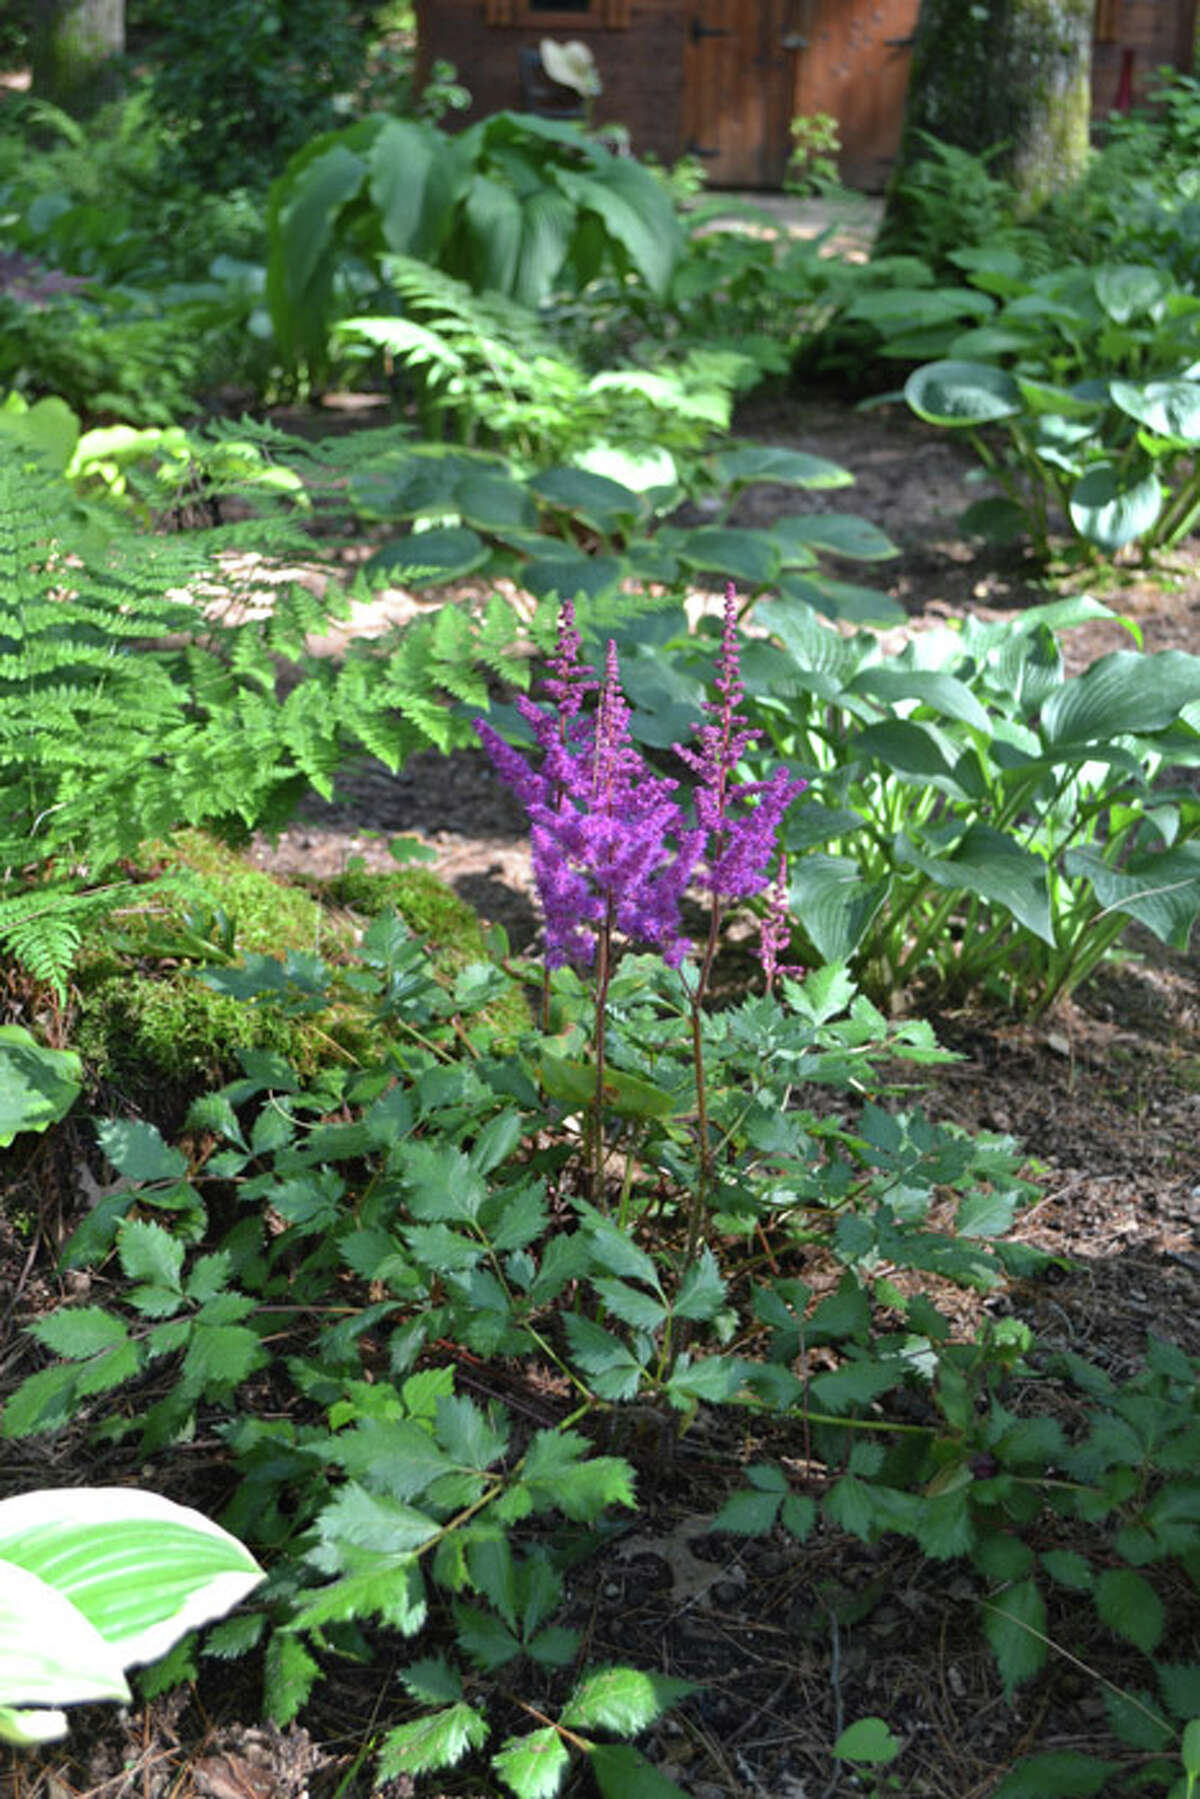 Meg and Jim Dalton started their garden, which specializes in gorgeous, bountiful hostas, in the spring of 2000.